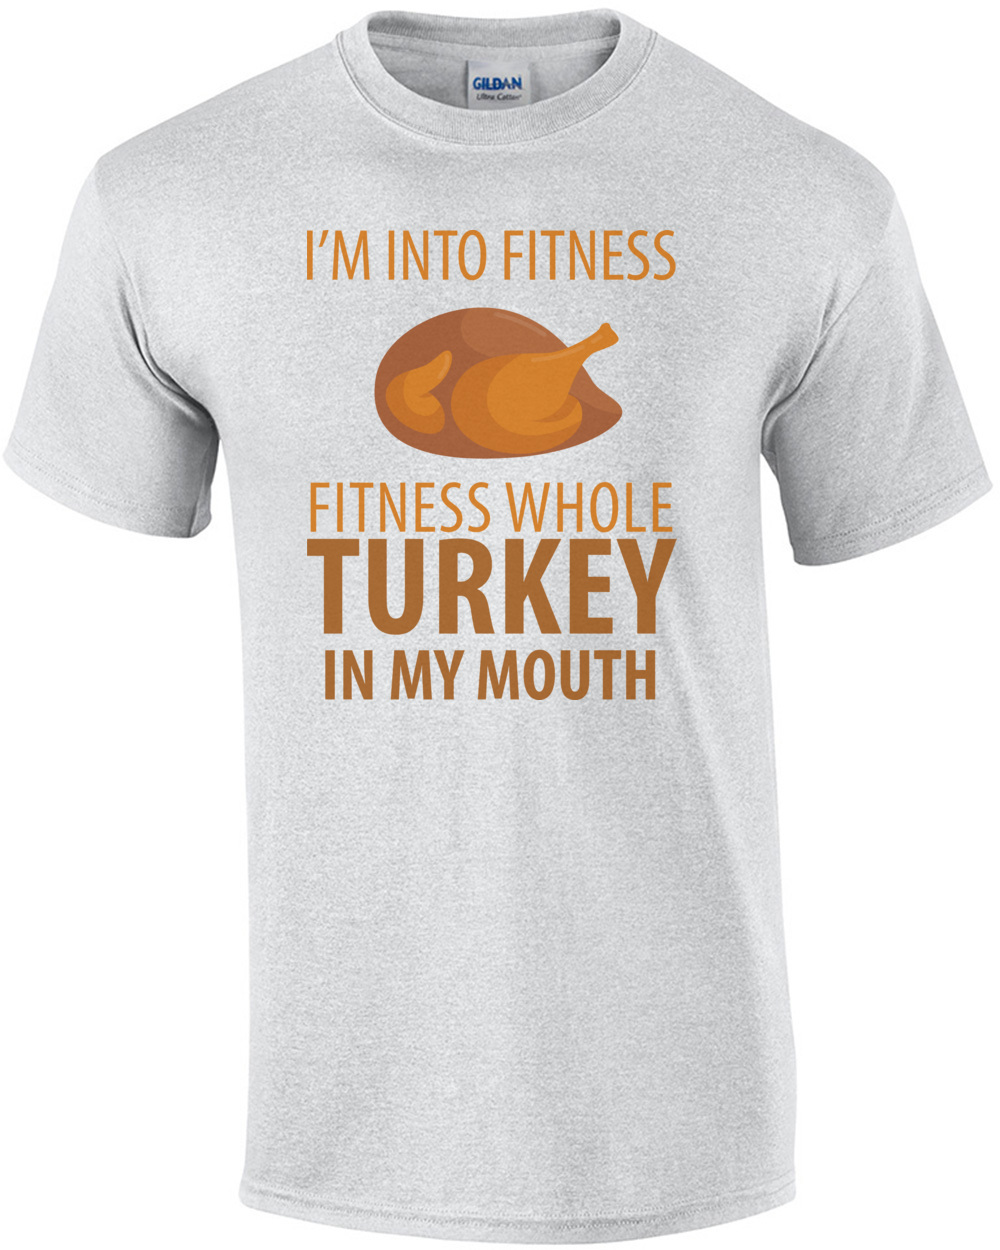 aaf4525ef6 I'm into fitness - fitness whole turkey in my mouth - funny thanksgiving t- shirt